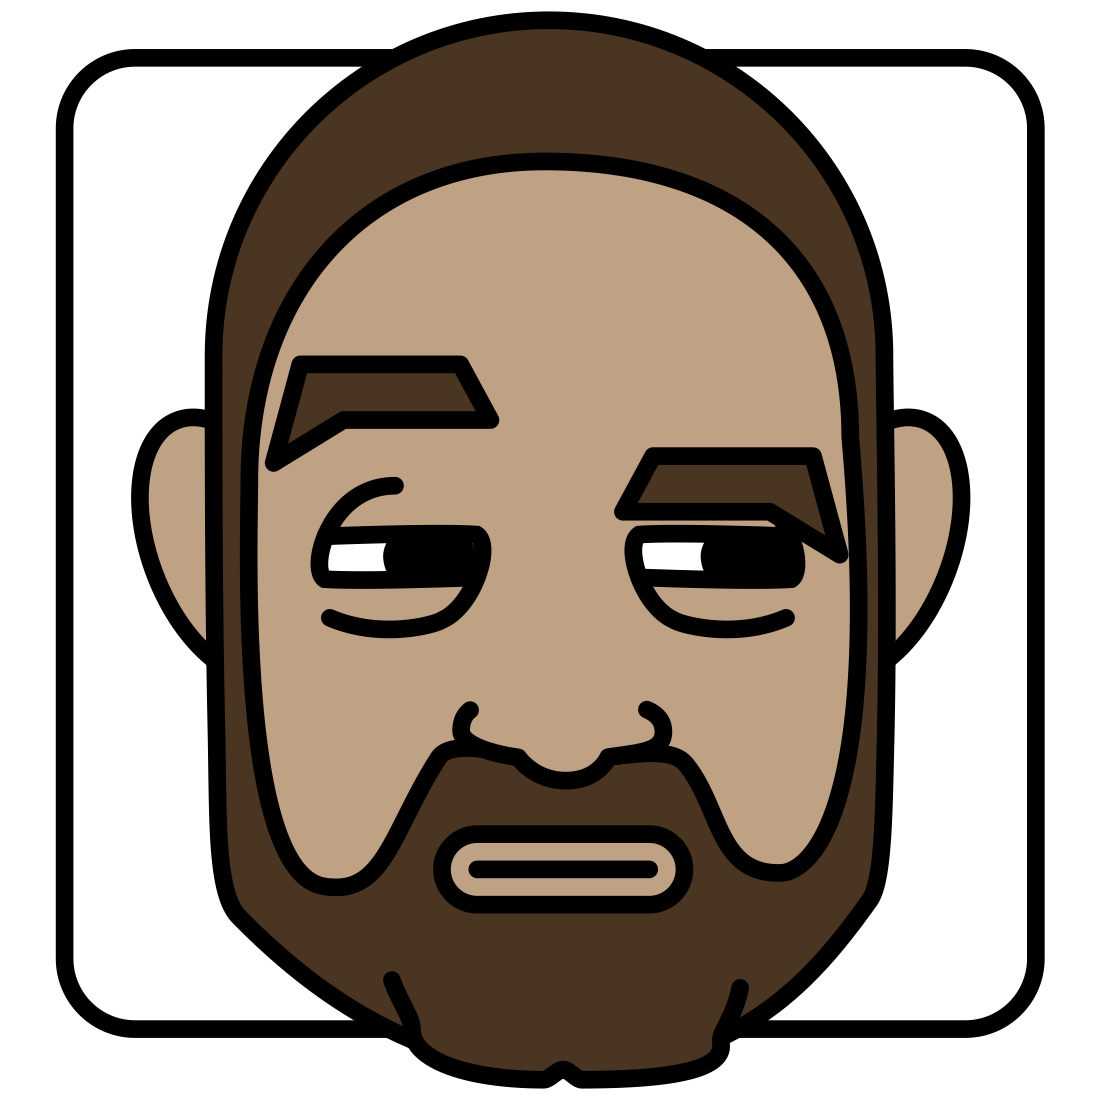 My new avatar, a self-portrait cartoon of me suspiciously looking to the left with a raised eyebrow.